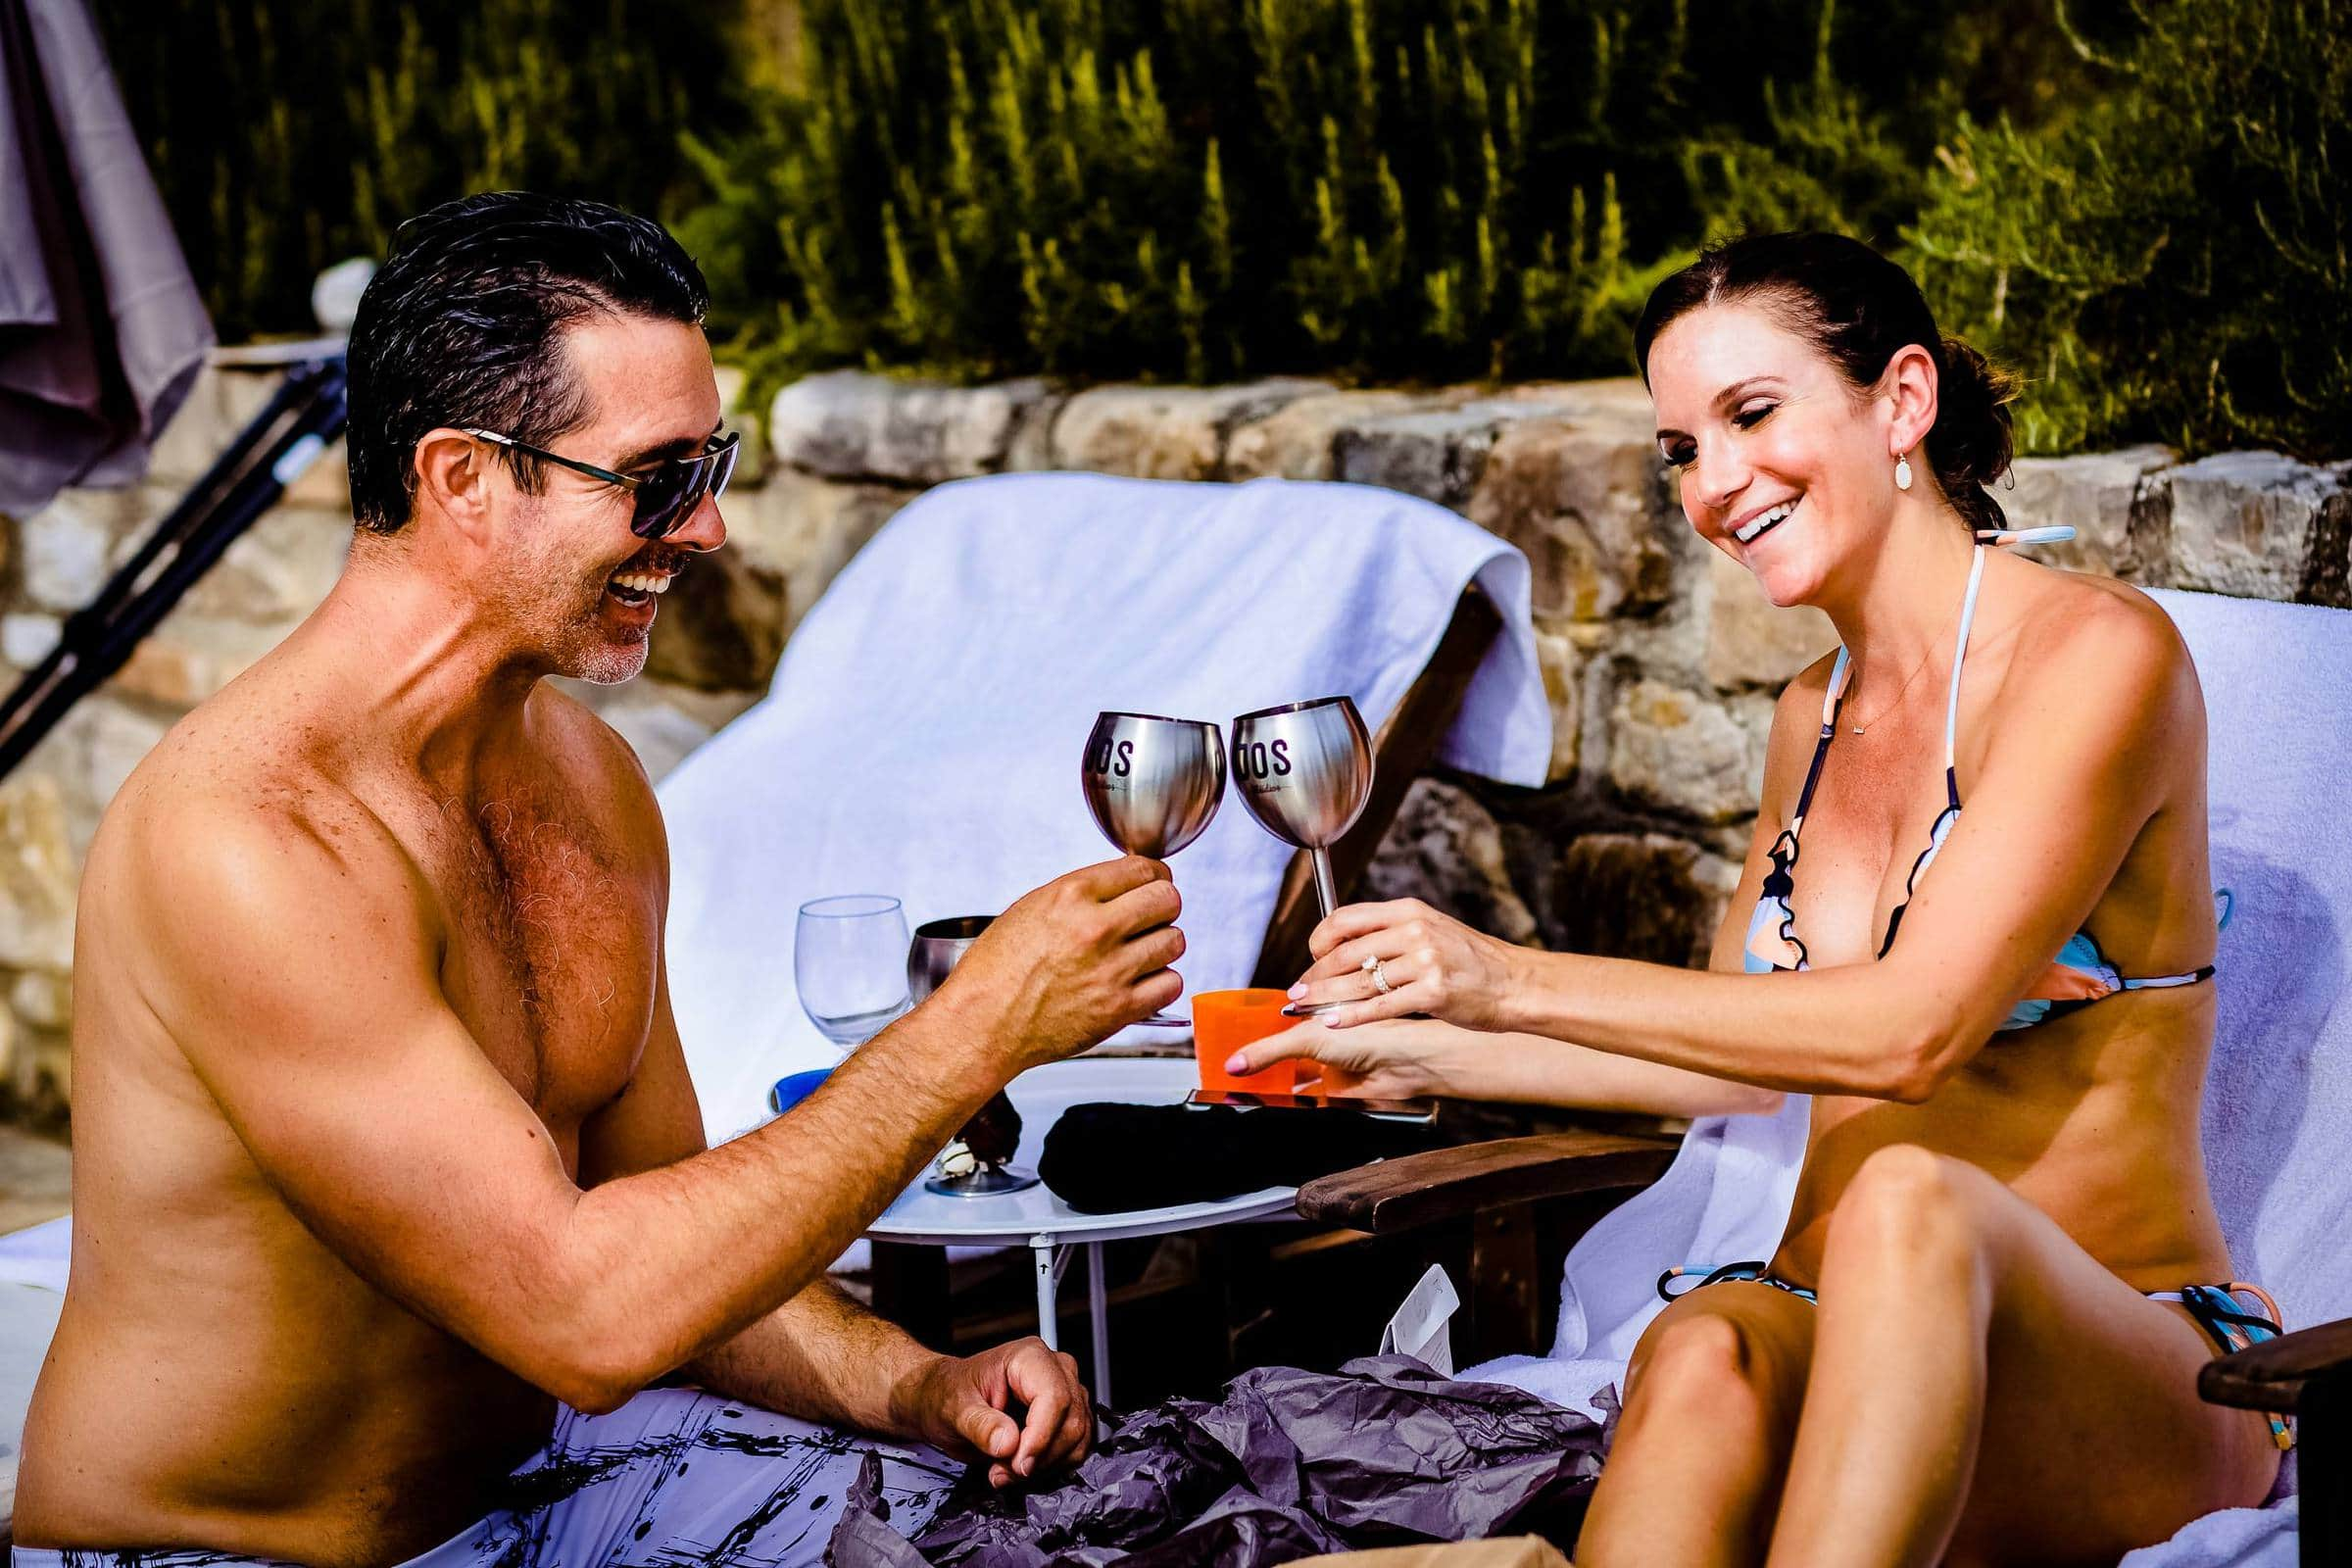 Bride and groom enjoying the pool party during a Villa Tre Grazie wedding celebration near Todi, Italy.